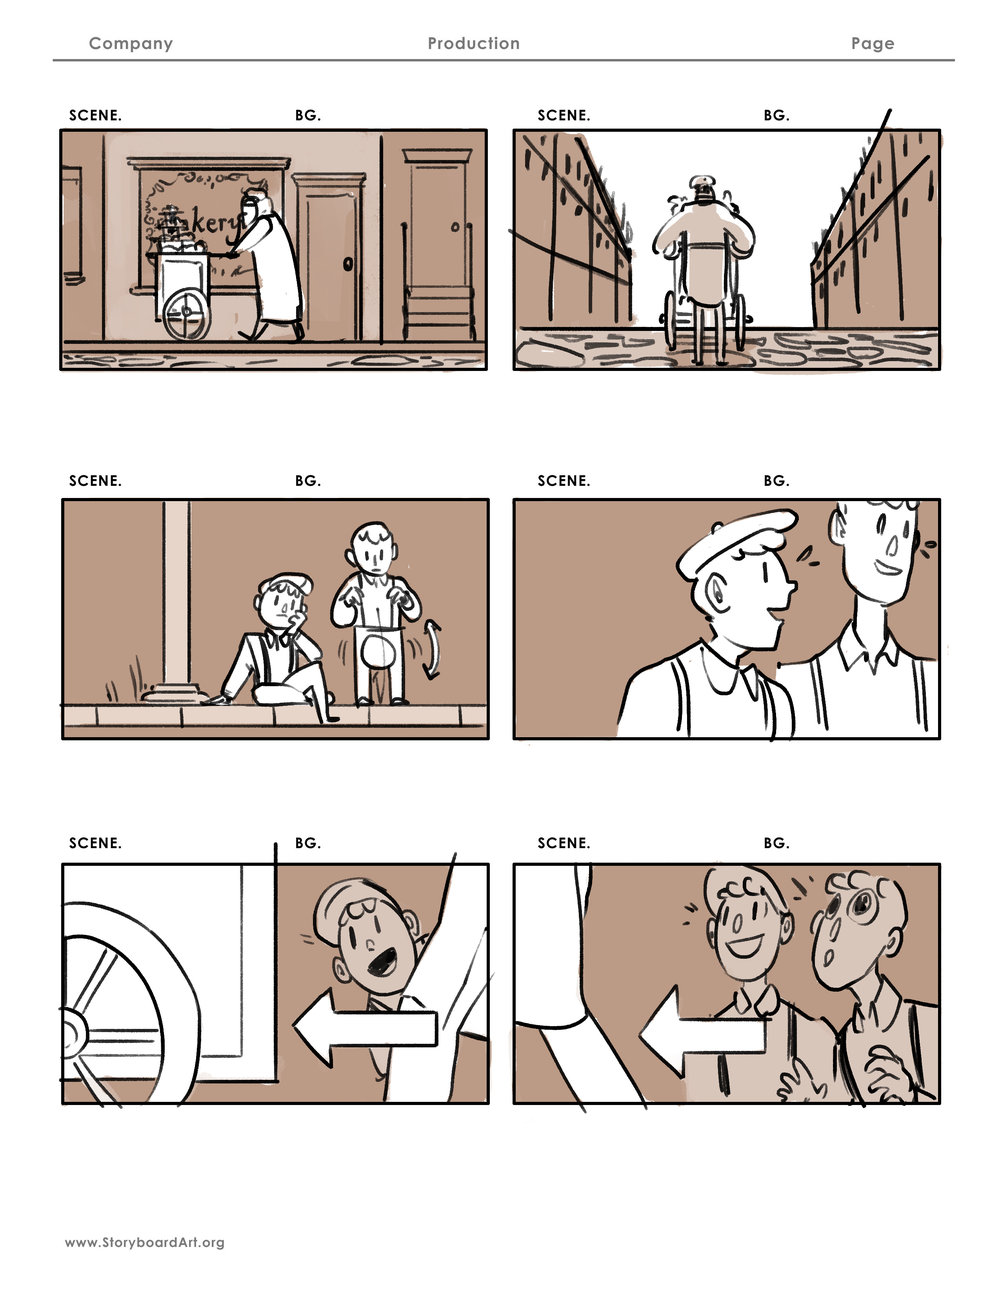 James storyboards page 2.jpg